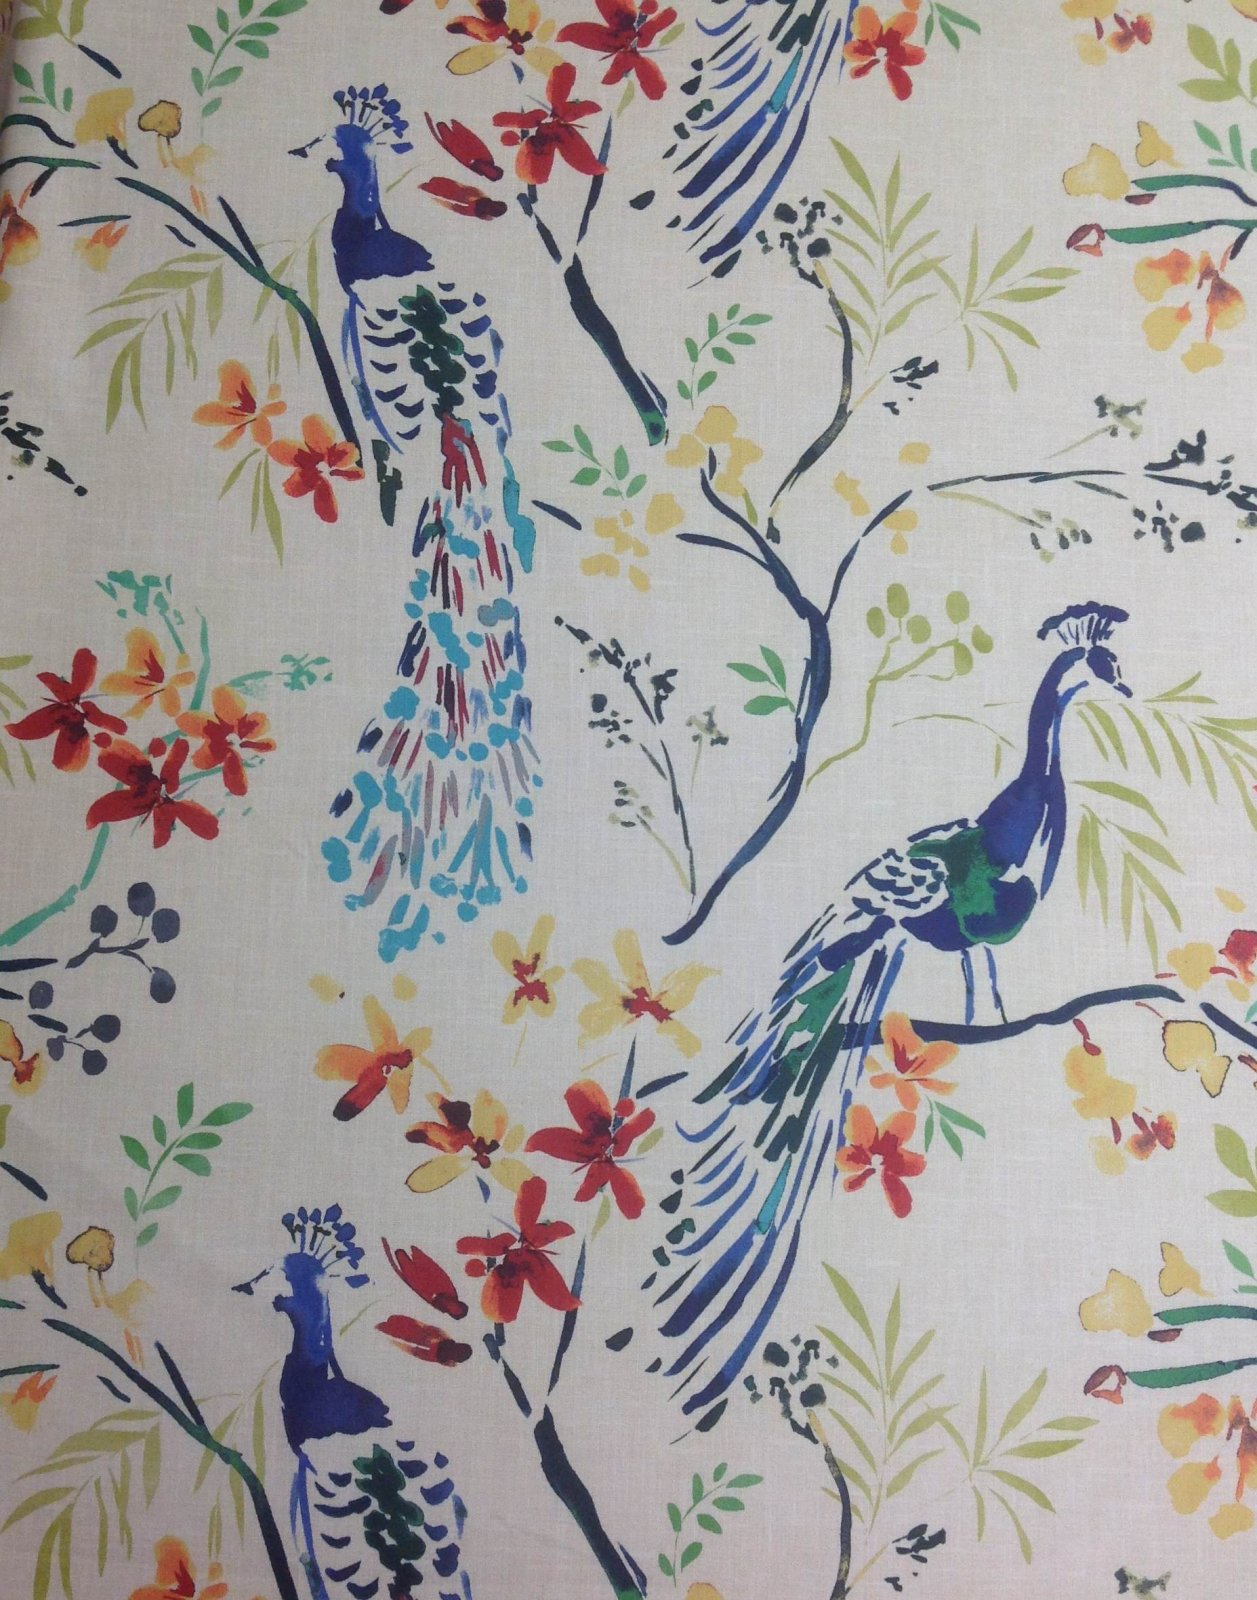 Hm118 Peacock Blue Bird Watercolor Painting Upholstery Home Decor Fabric